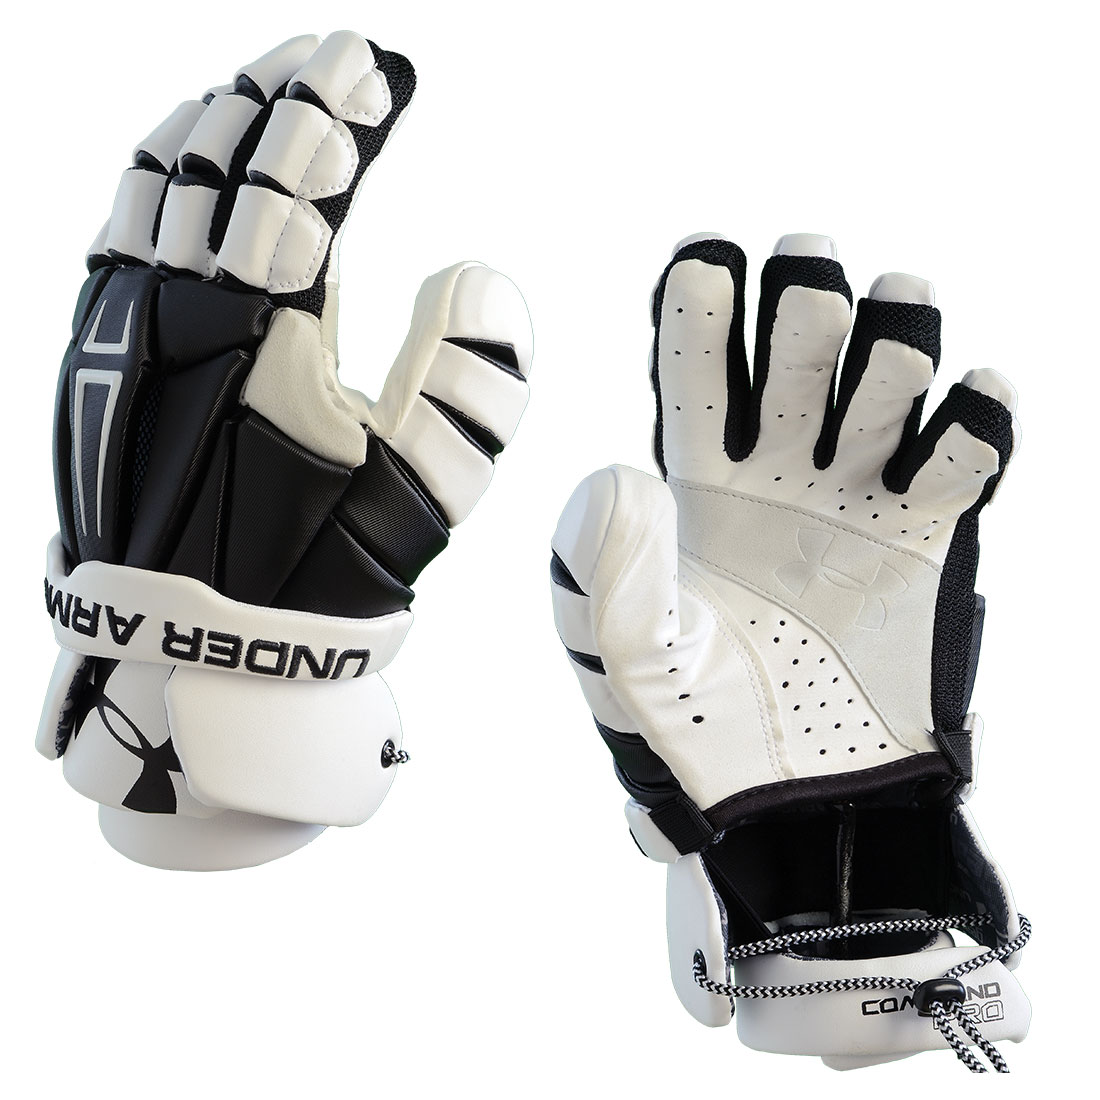 under armour goalie gloves